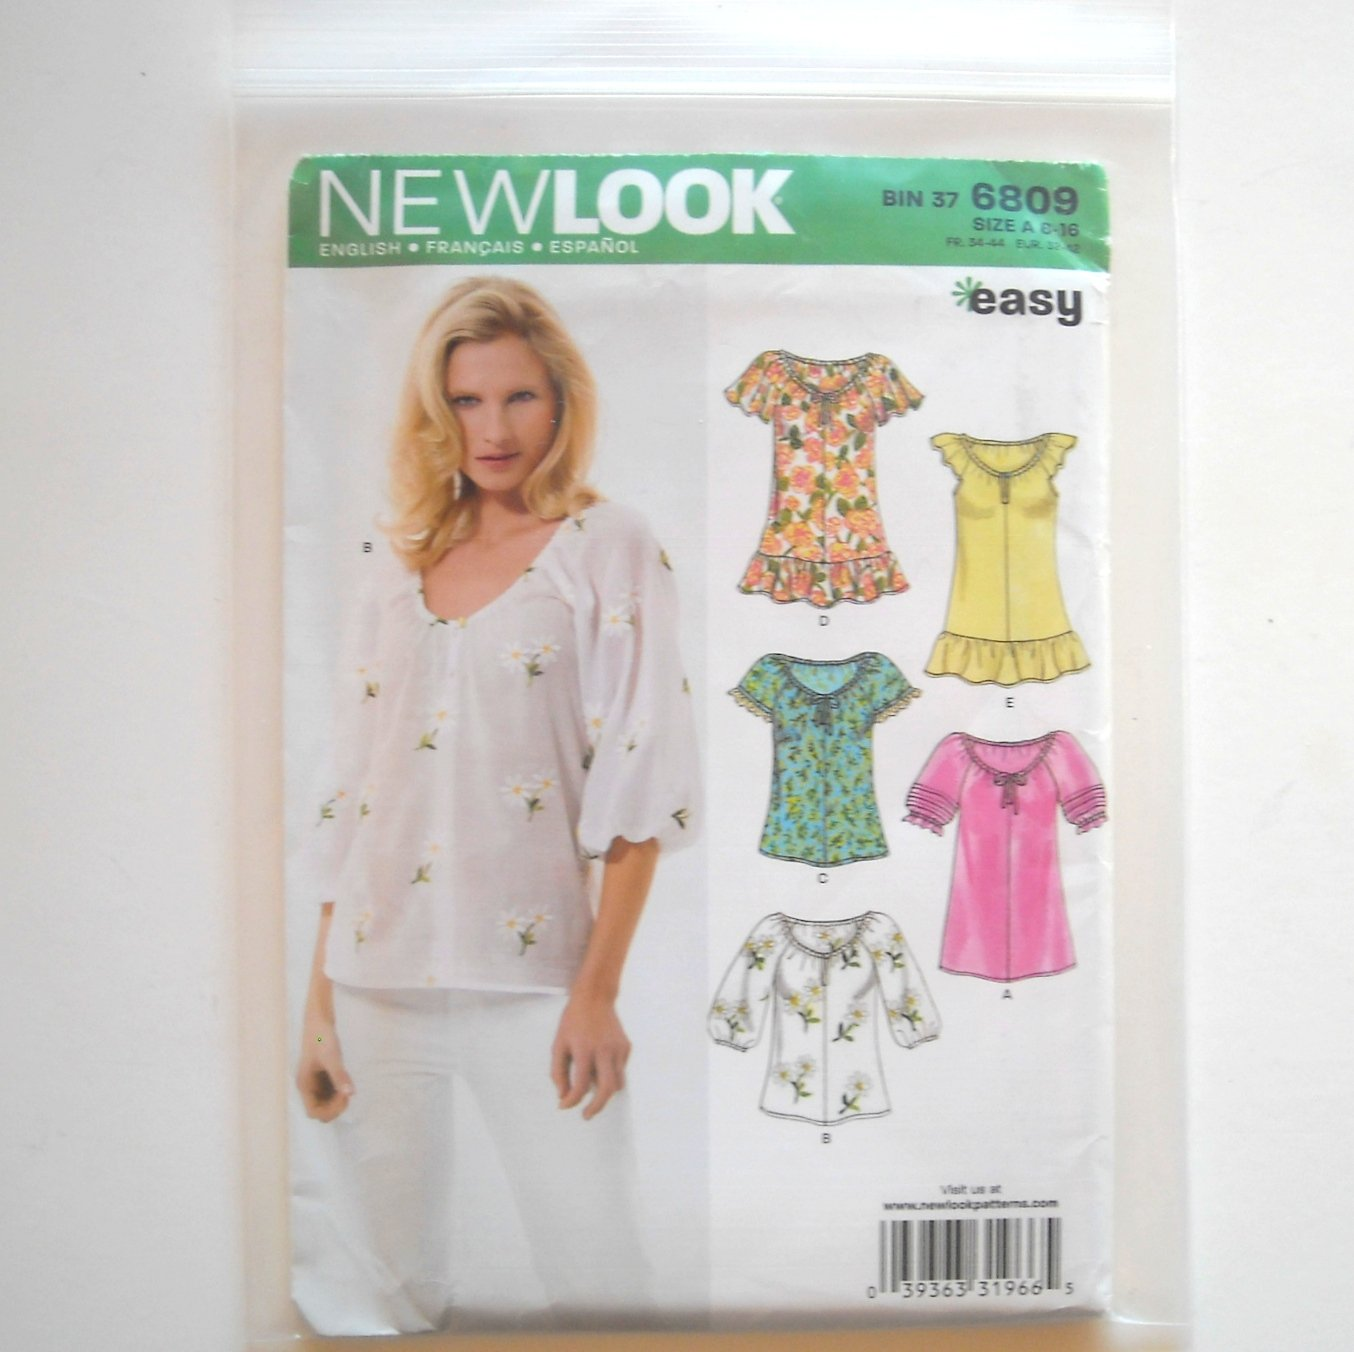 New Look Simplicity Pattern 6809 Size 6 - 16 Womens Misses Blouse Tops